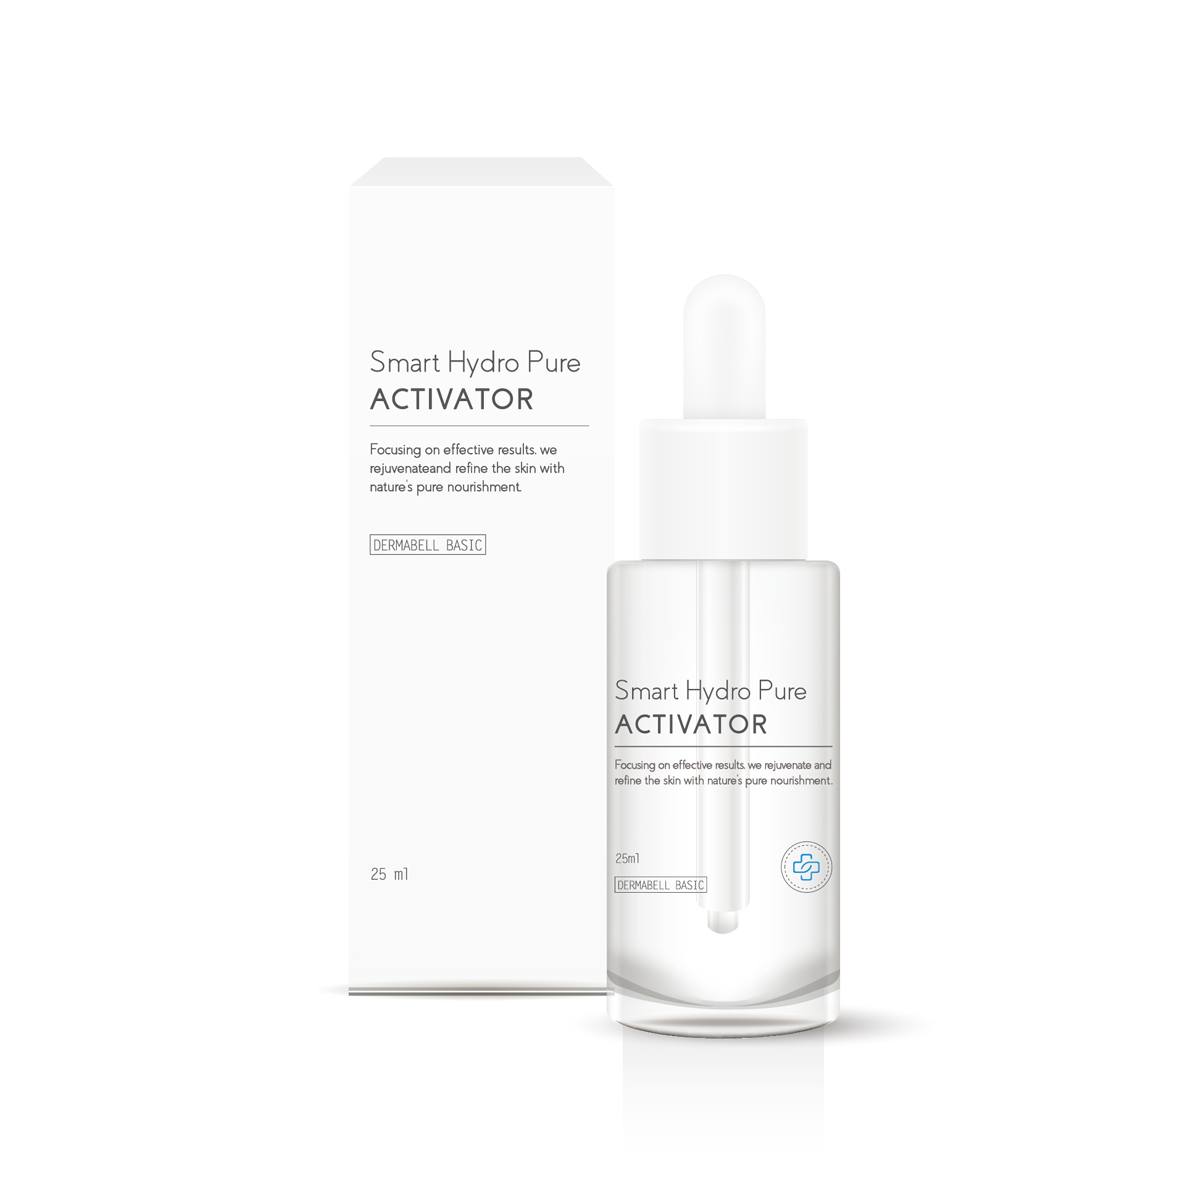 Smart Hydro Pure Activator Activator by Dermabell Basic